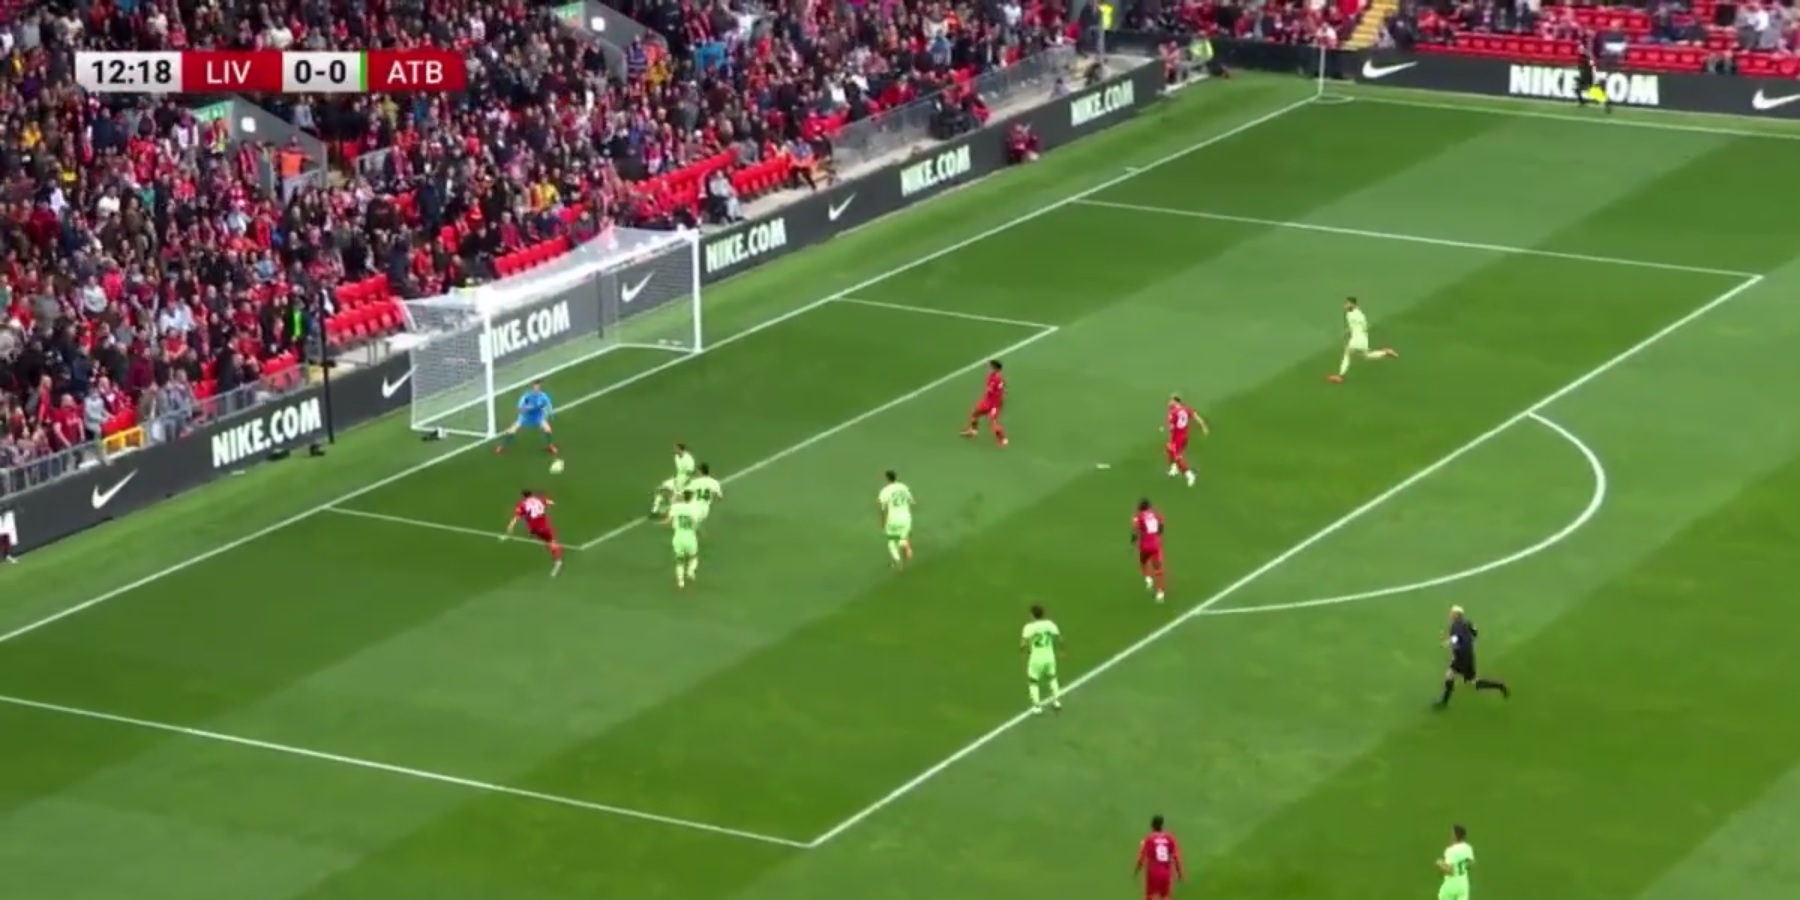 (Video) Diogo Jota slams in great strike to put Liverpool ahead at packed Anfield